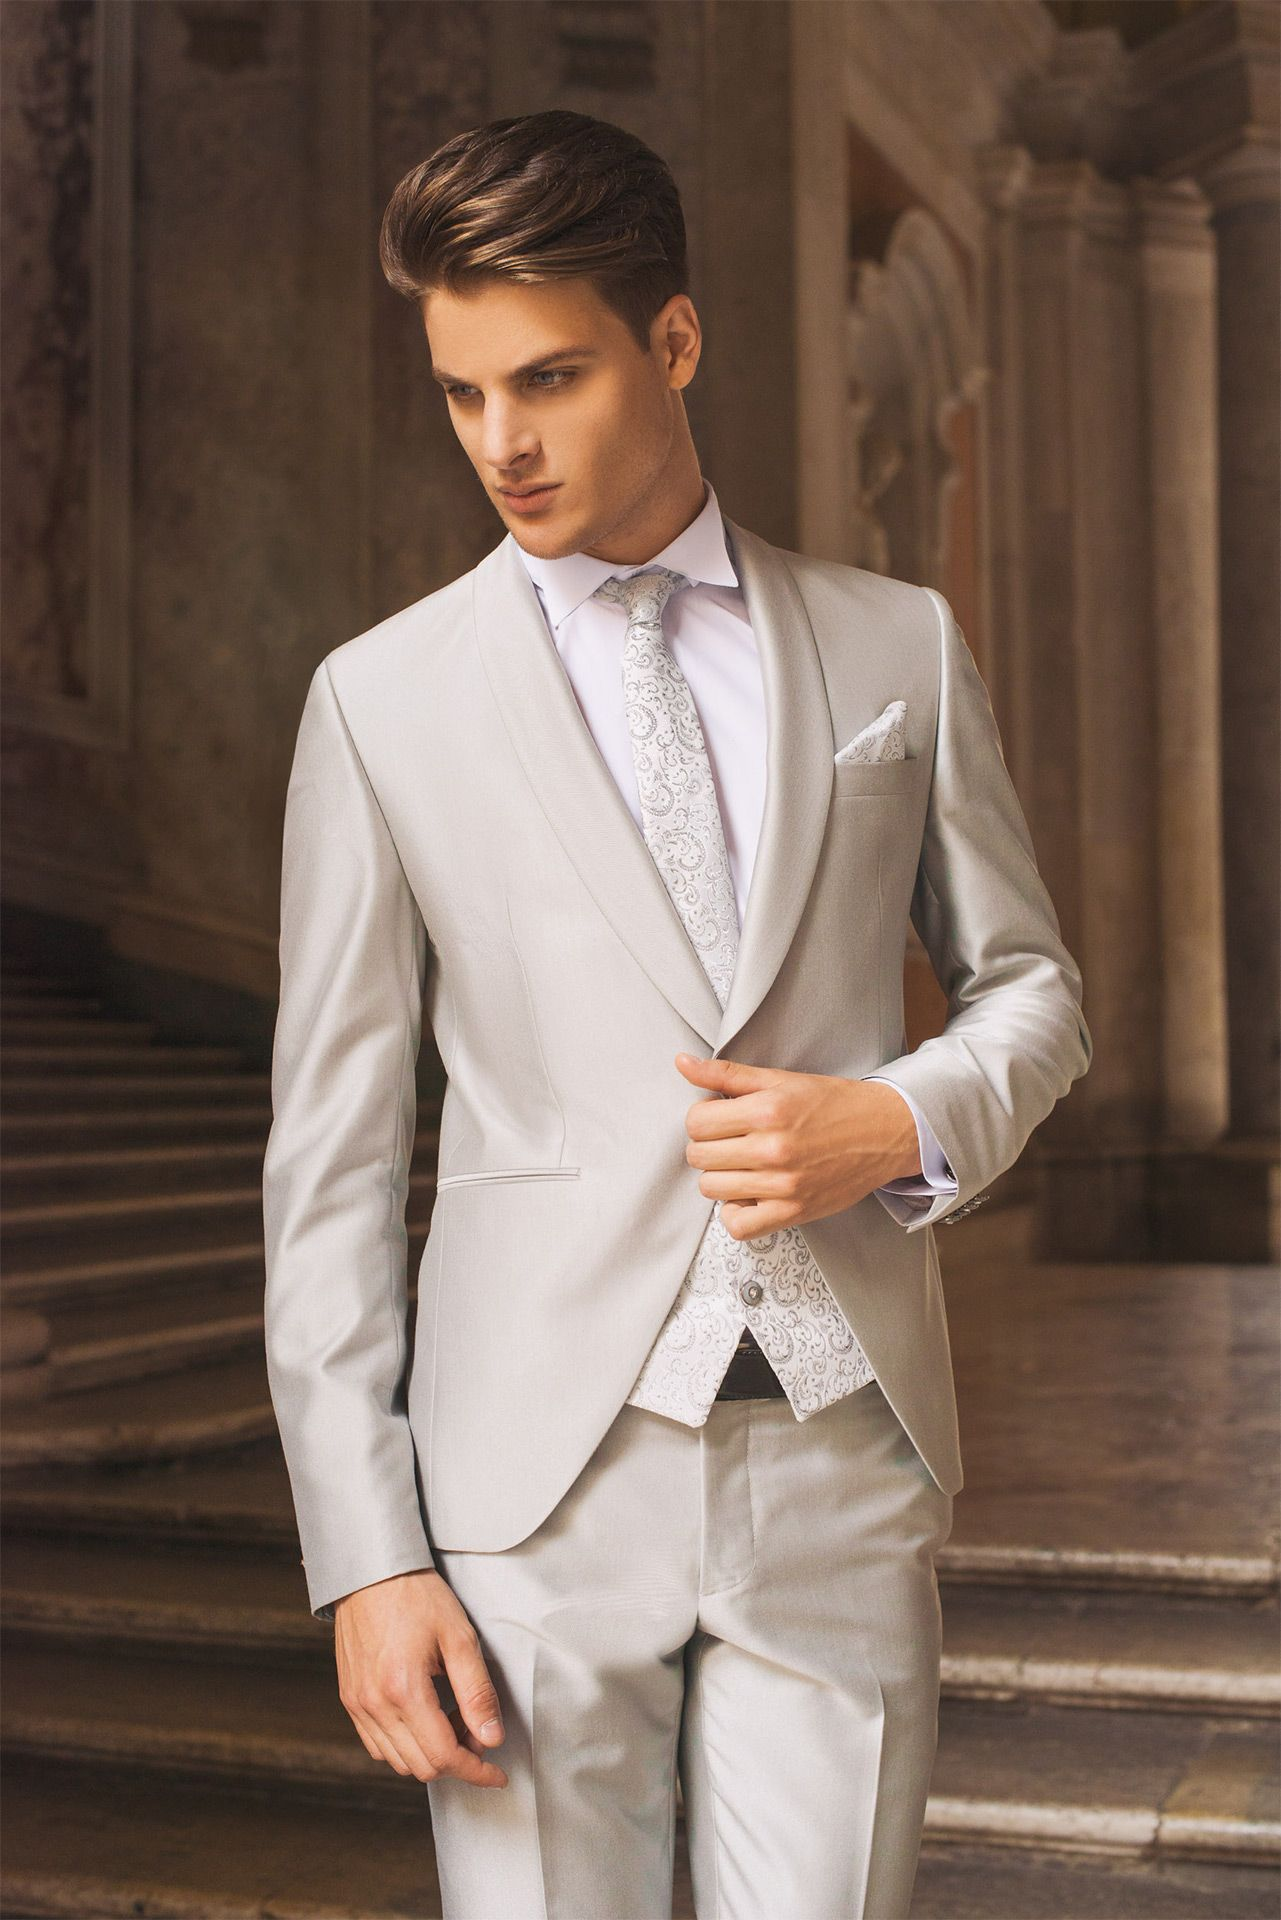 Impero uomo abito elegante wedding dress mariage matrimonio